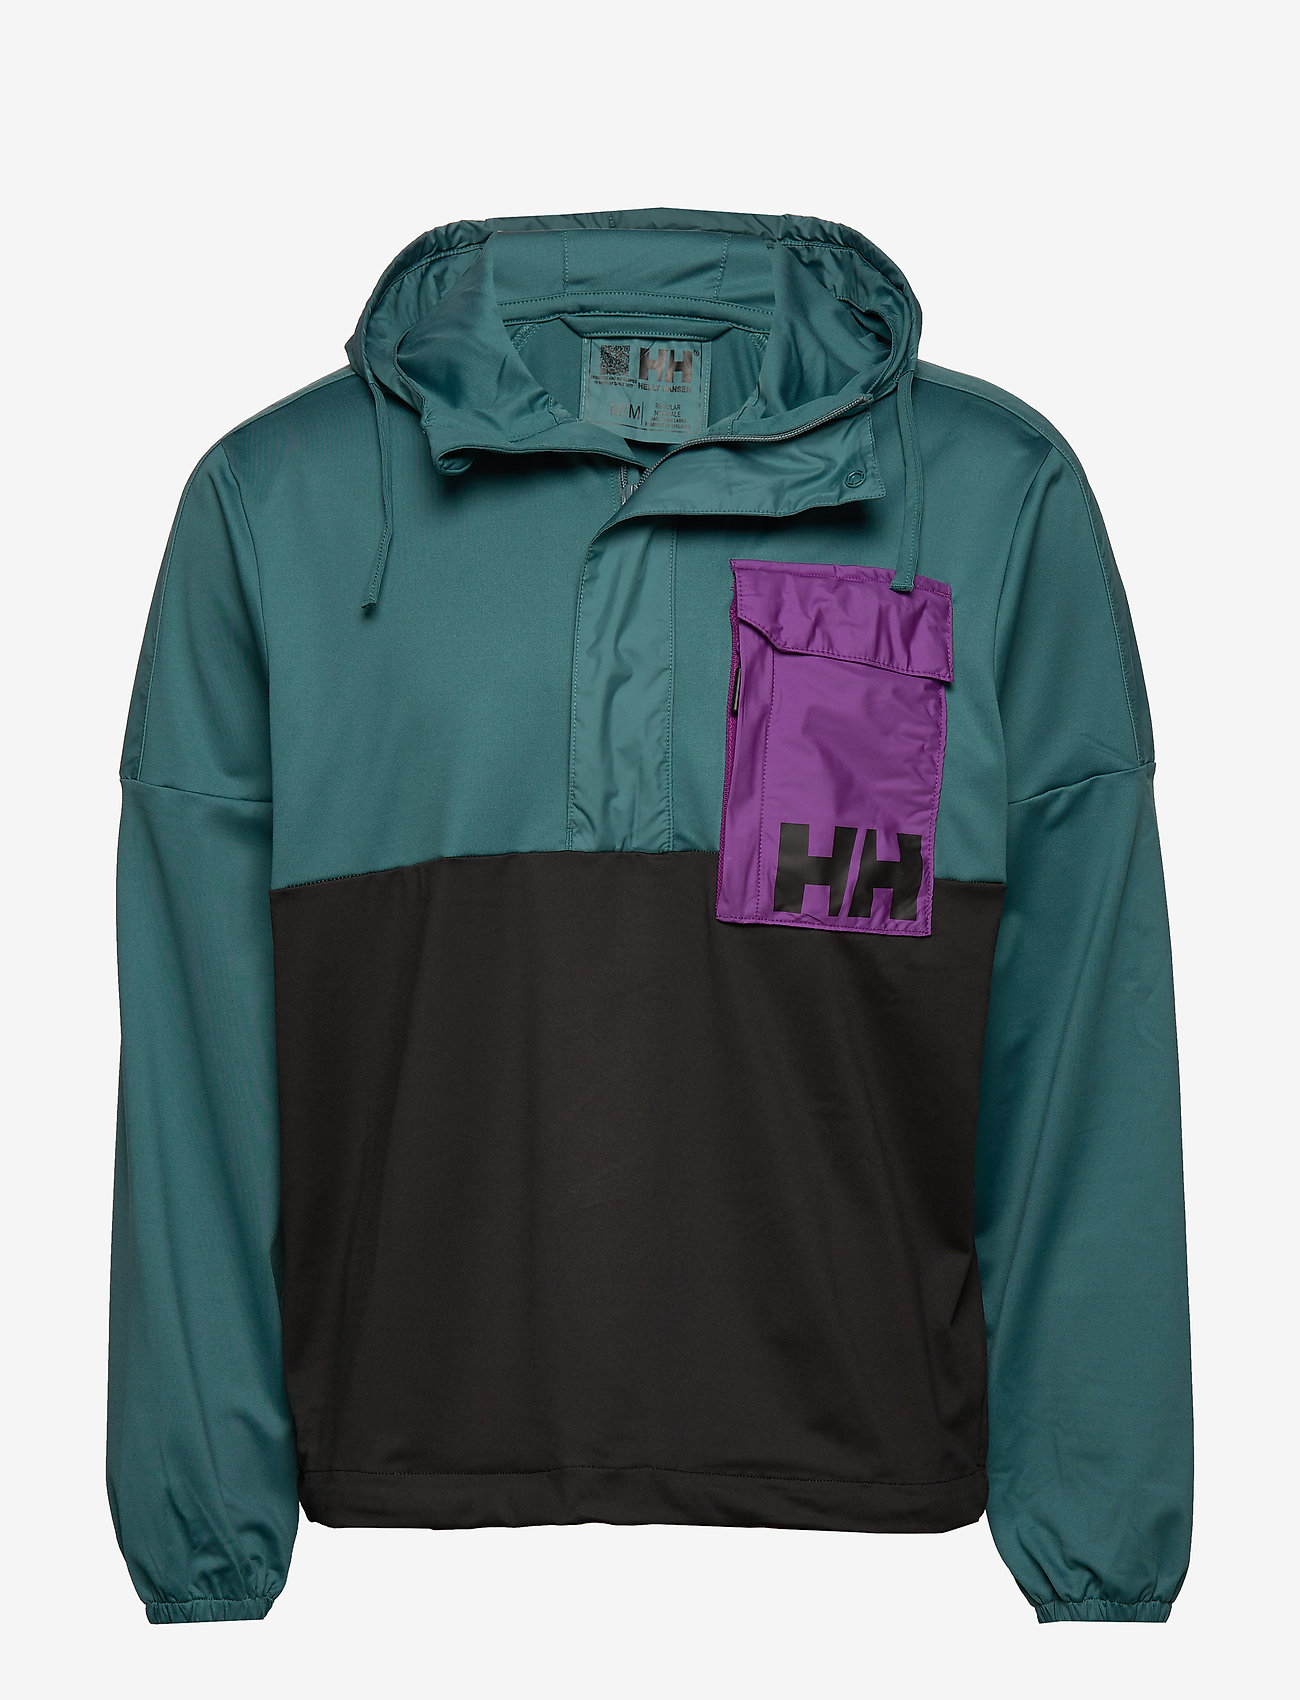 P&c Anorak (Washed Teal) - Helly Hansen t6ZAyA